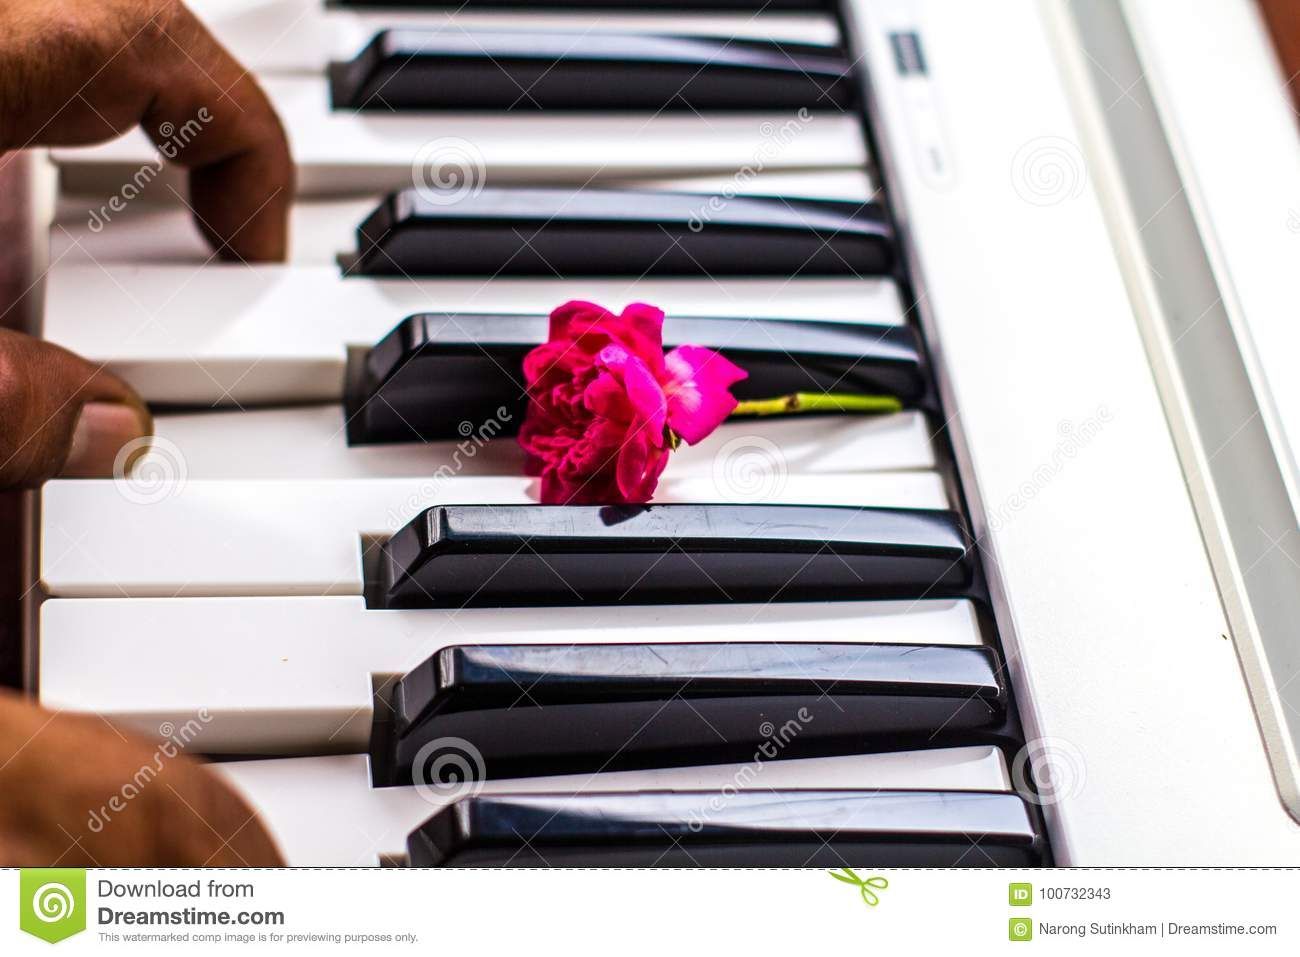 Love Songs Piano With Pink Flowers Stock Image - Image of color